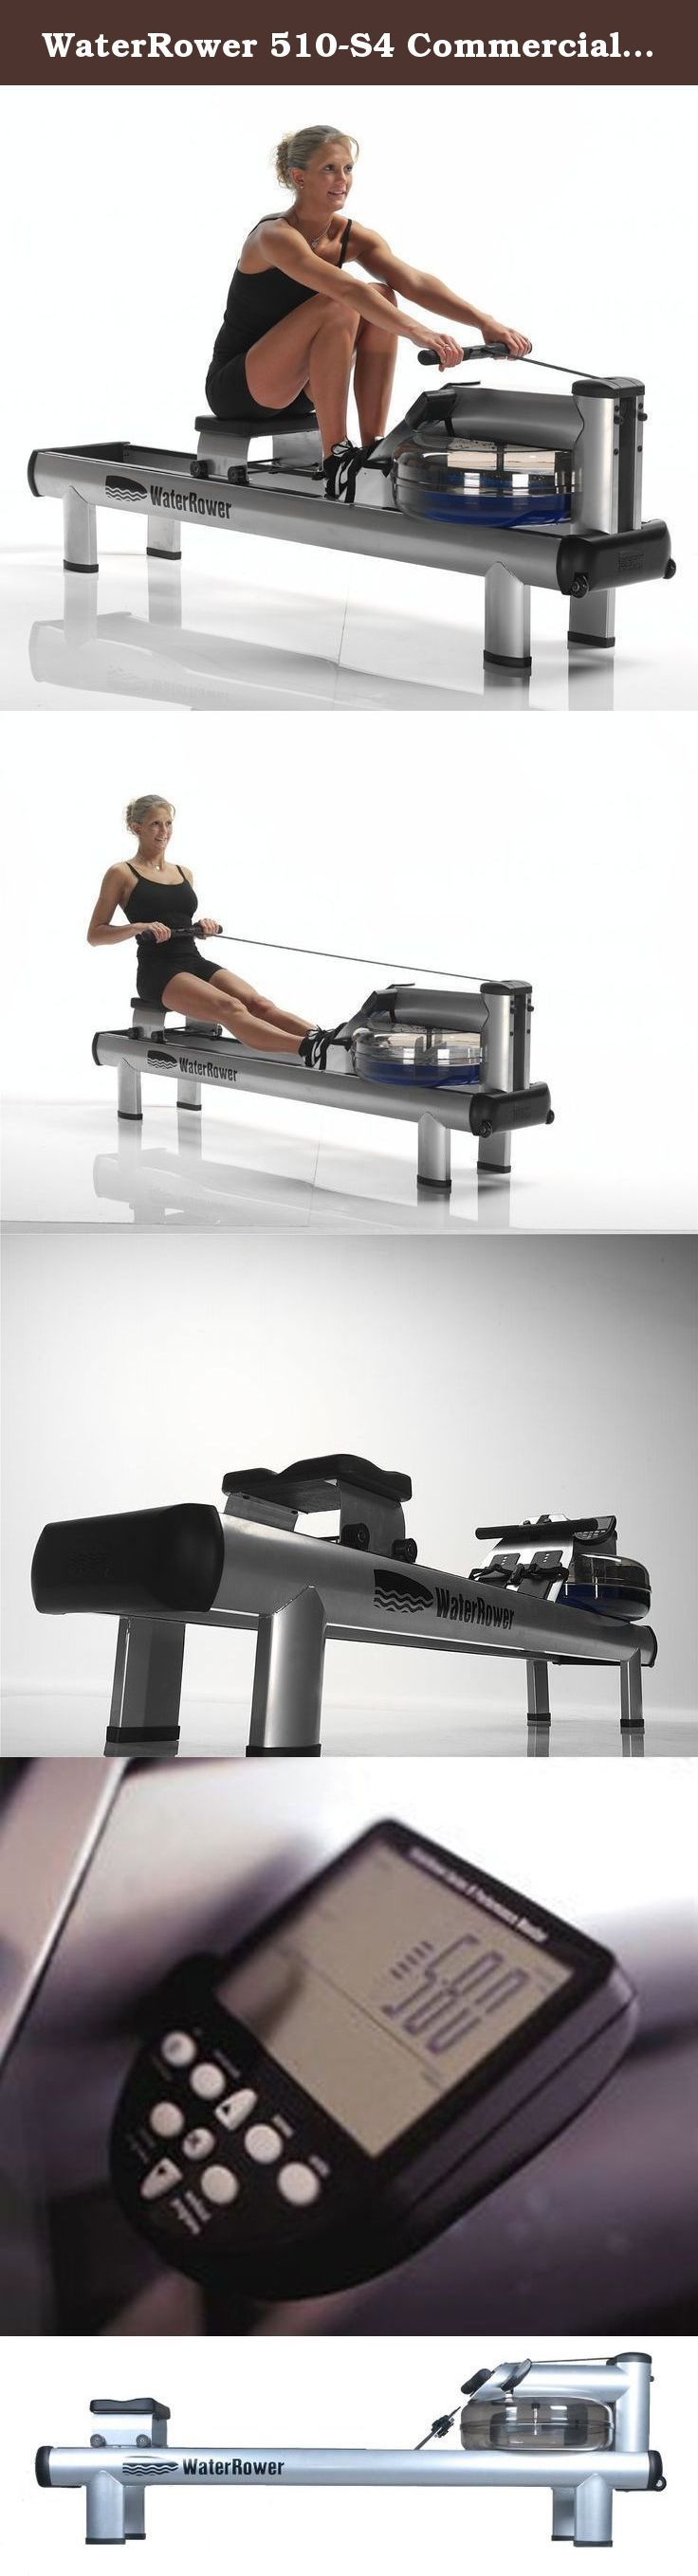 """WaterRower 510-S4 Commercial M1 HiRise Rowing Machine in Steel - Water Rower - Water Rowing Ergometer. The WaterRower M1 HiRise is a full commercial model with a higher level entry point (500mm/20""""). The frame is constructed from pressed tubular steel with a powder coated finish. The S4 performance monitor includes six information and programming windows, six QuickSelection buttons, and three navigation buttons, and displays your workout intensity, stroke rate, heart rate, zone bar…"""